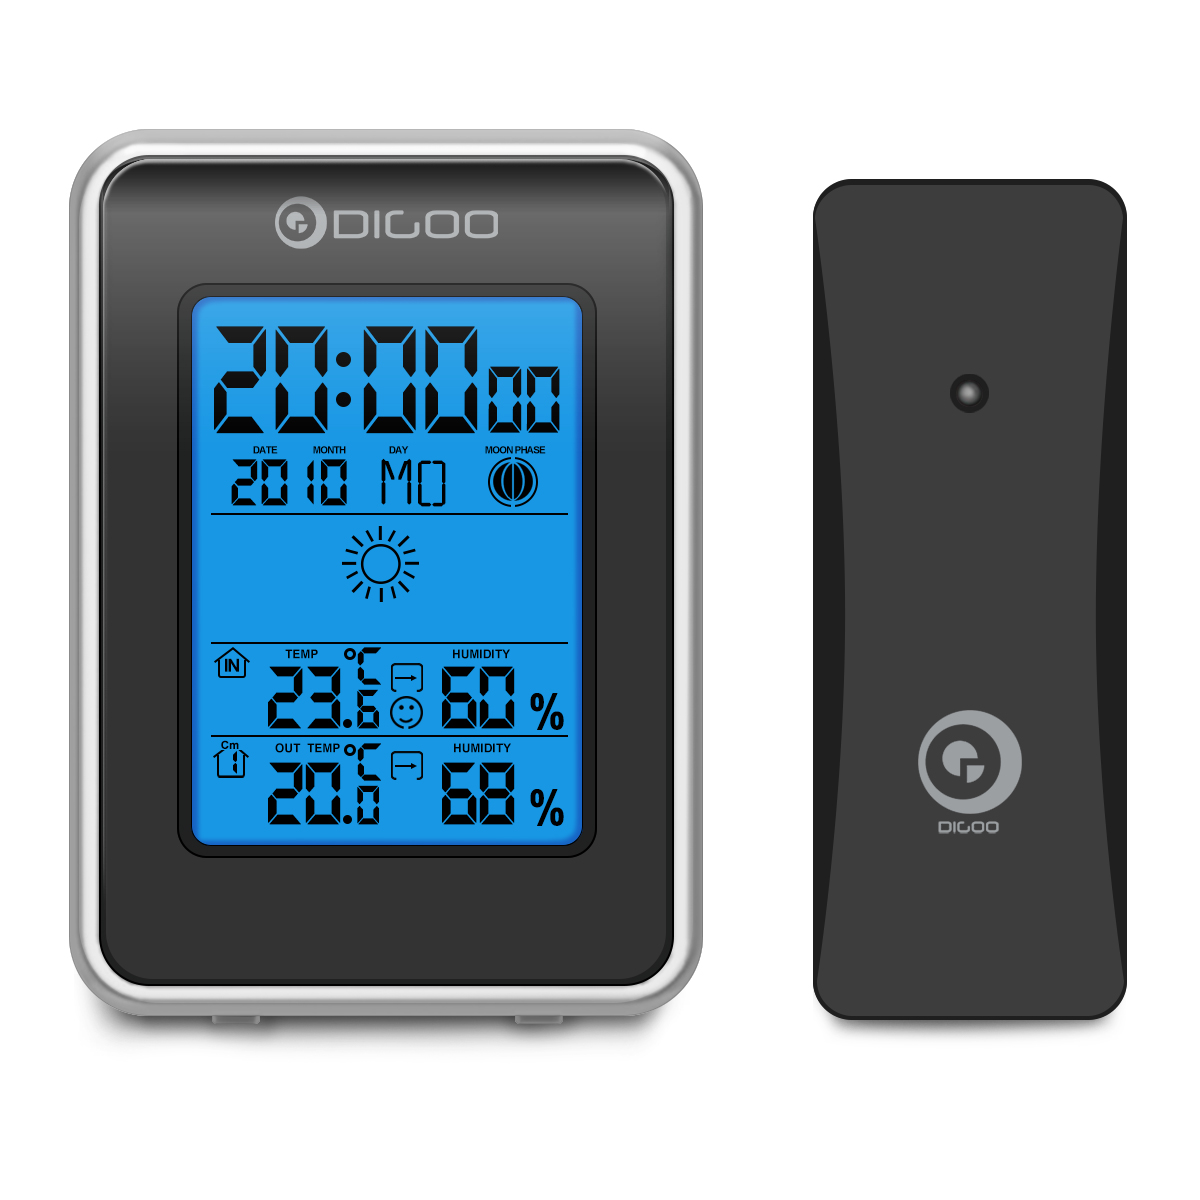 Digoo DG-TH1981 Weather Station Hygrometer Thermometer Clock Station Outdoor Forecast Sensor - Weather Forecast:Sunny & Partly Cloudy & Cloudy & Rainy